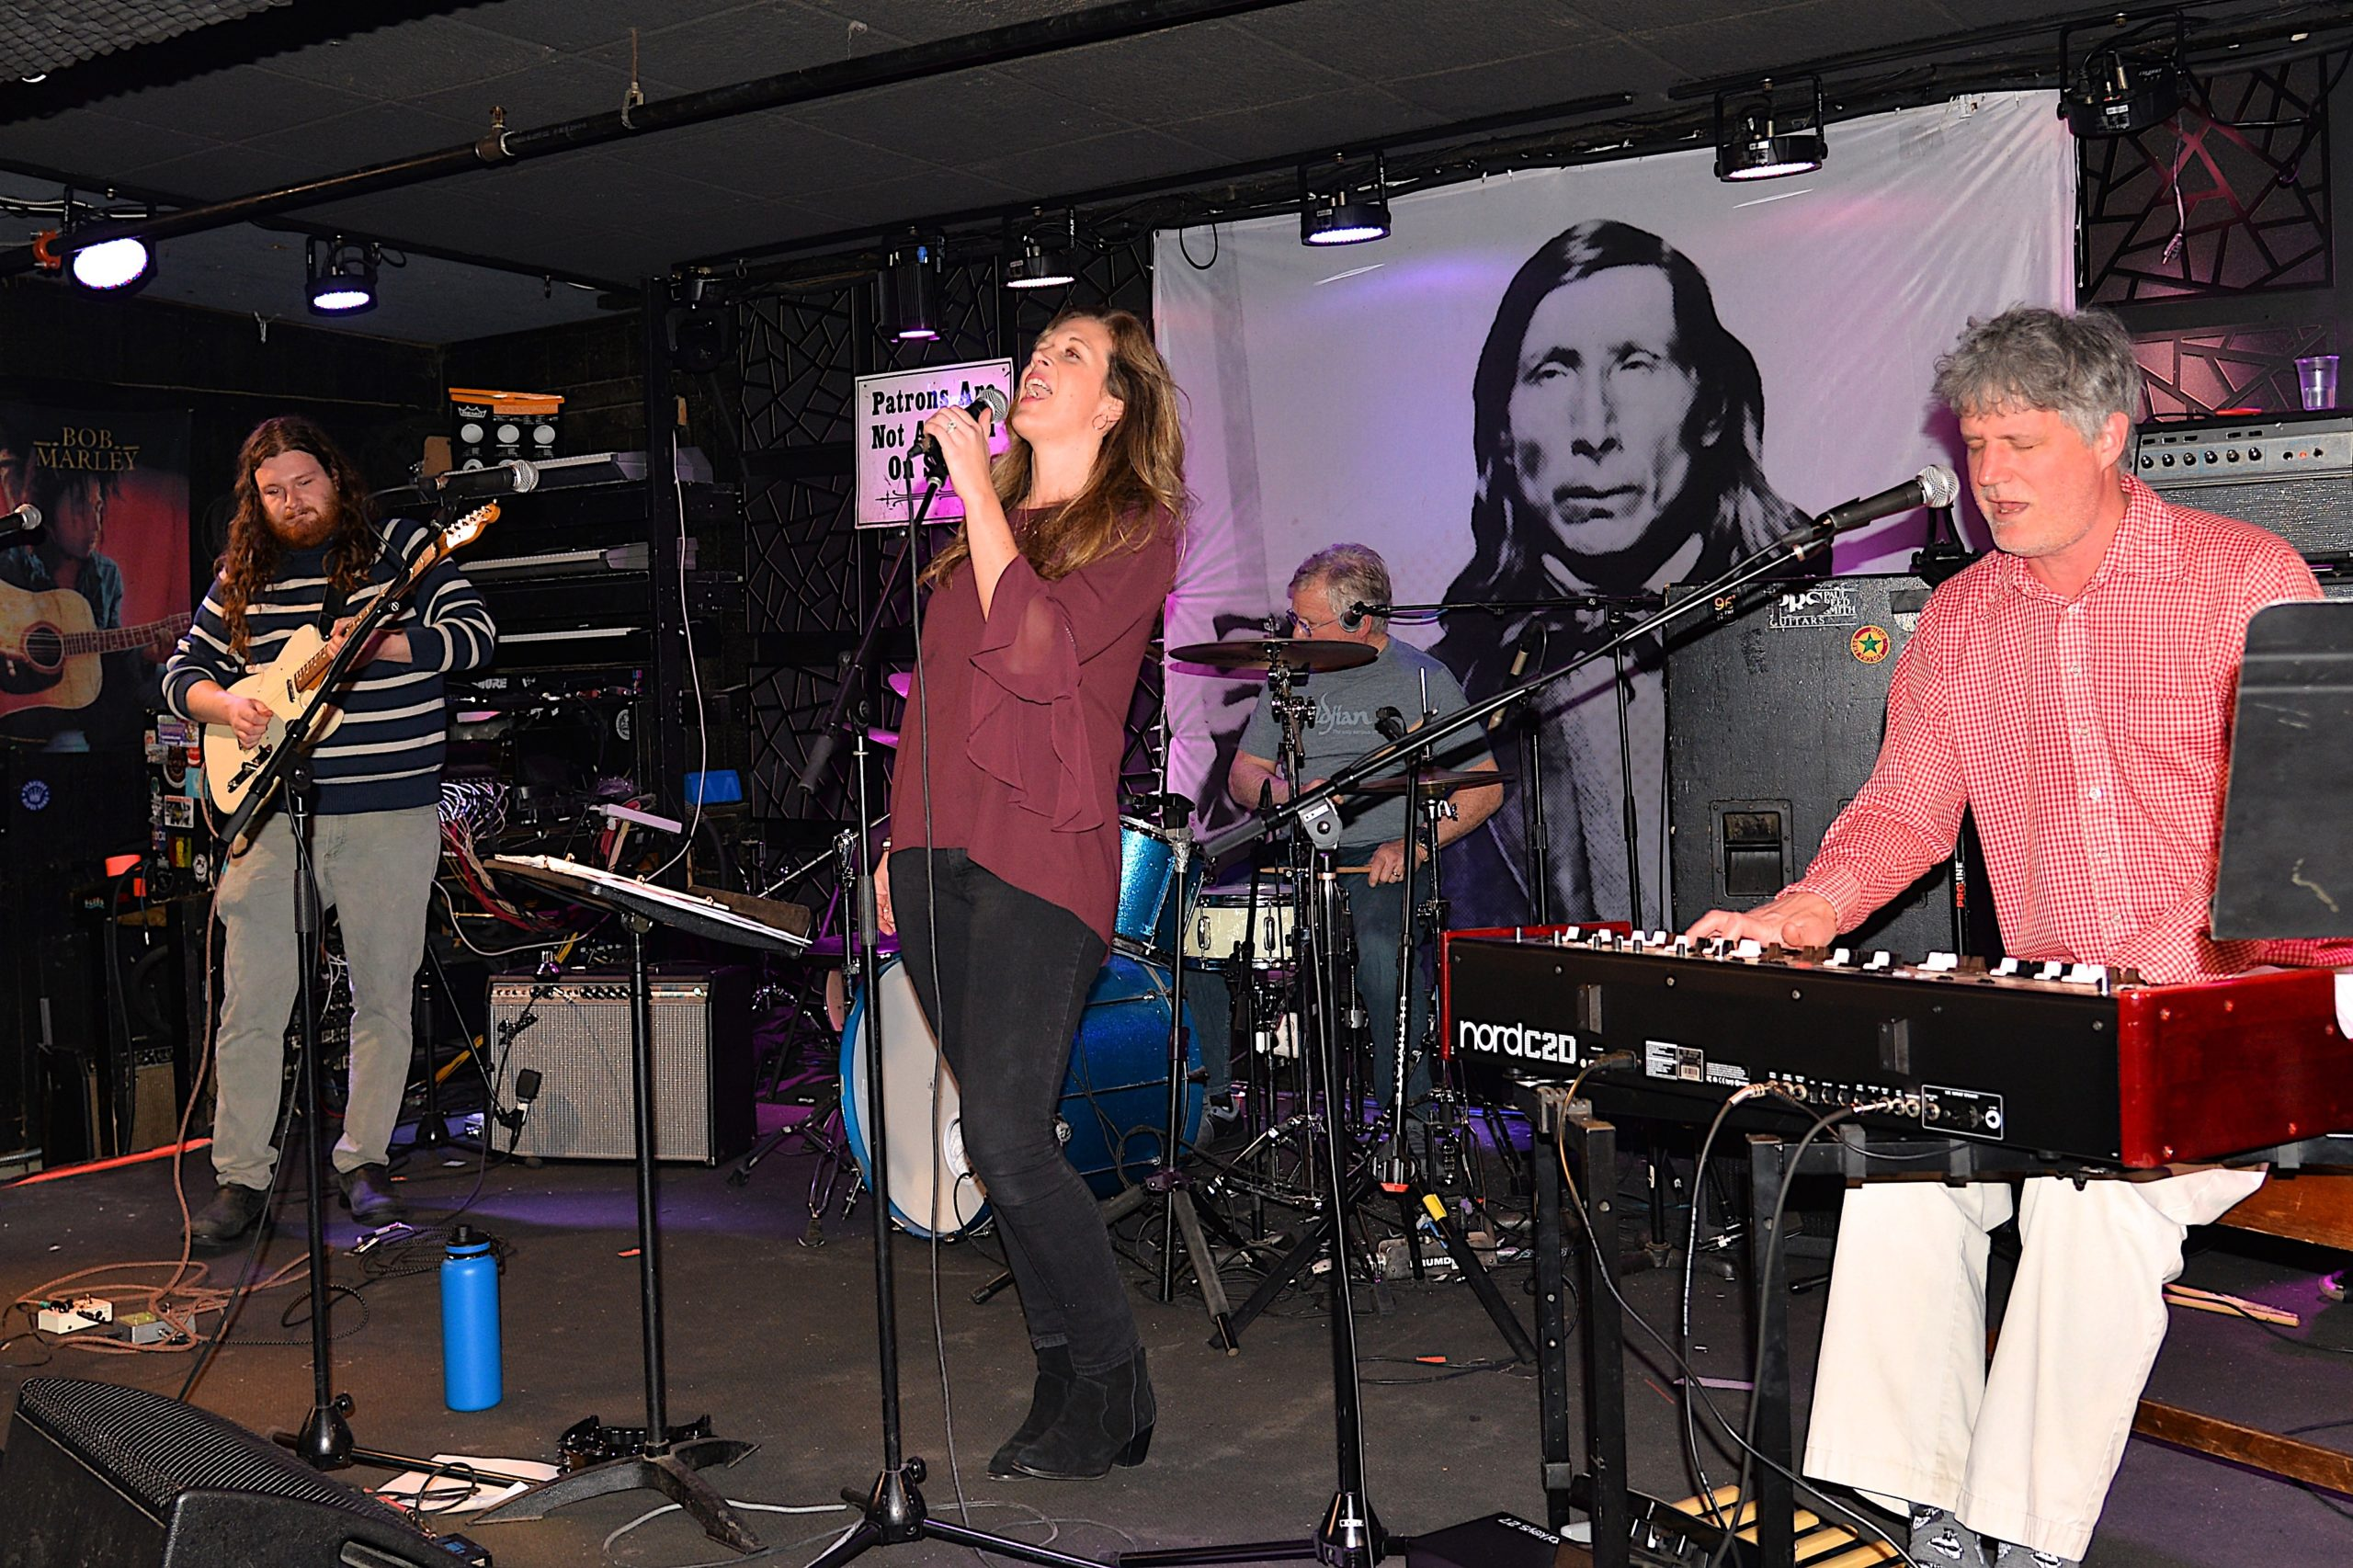 The Rum Hill Rockers performed on Thursday at Rock the Retreat, held at the Stephen Talkhouse in Amagansett. Proceeds will go to The Retreat and its programs to assist victims of domestic violence. KYRIL BROMLEY